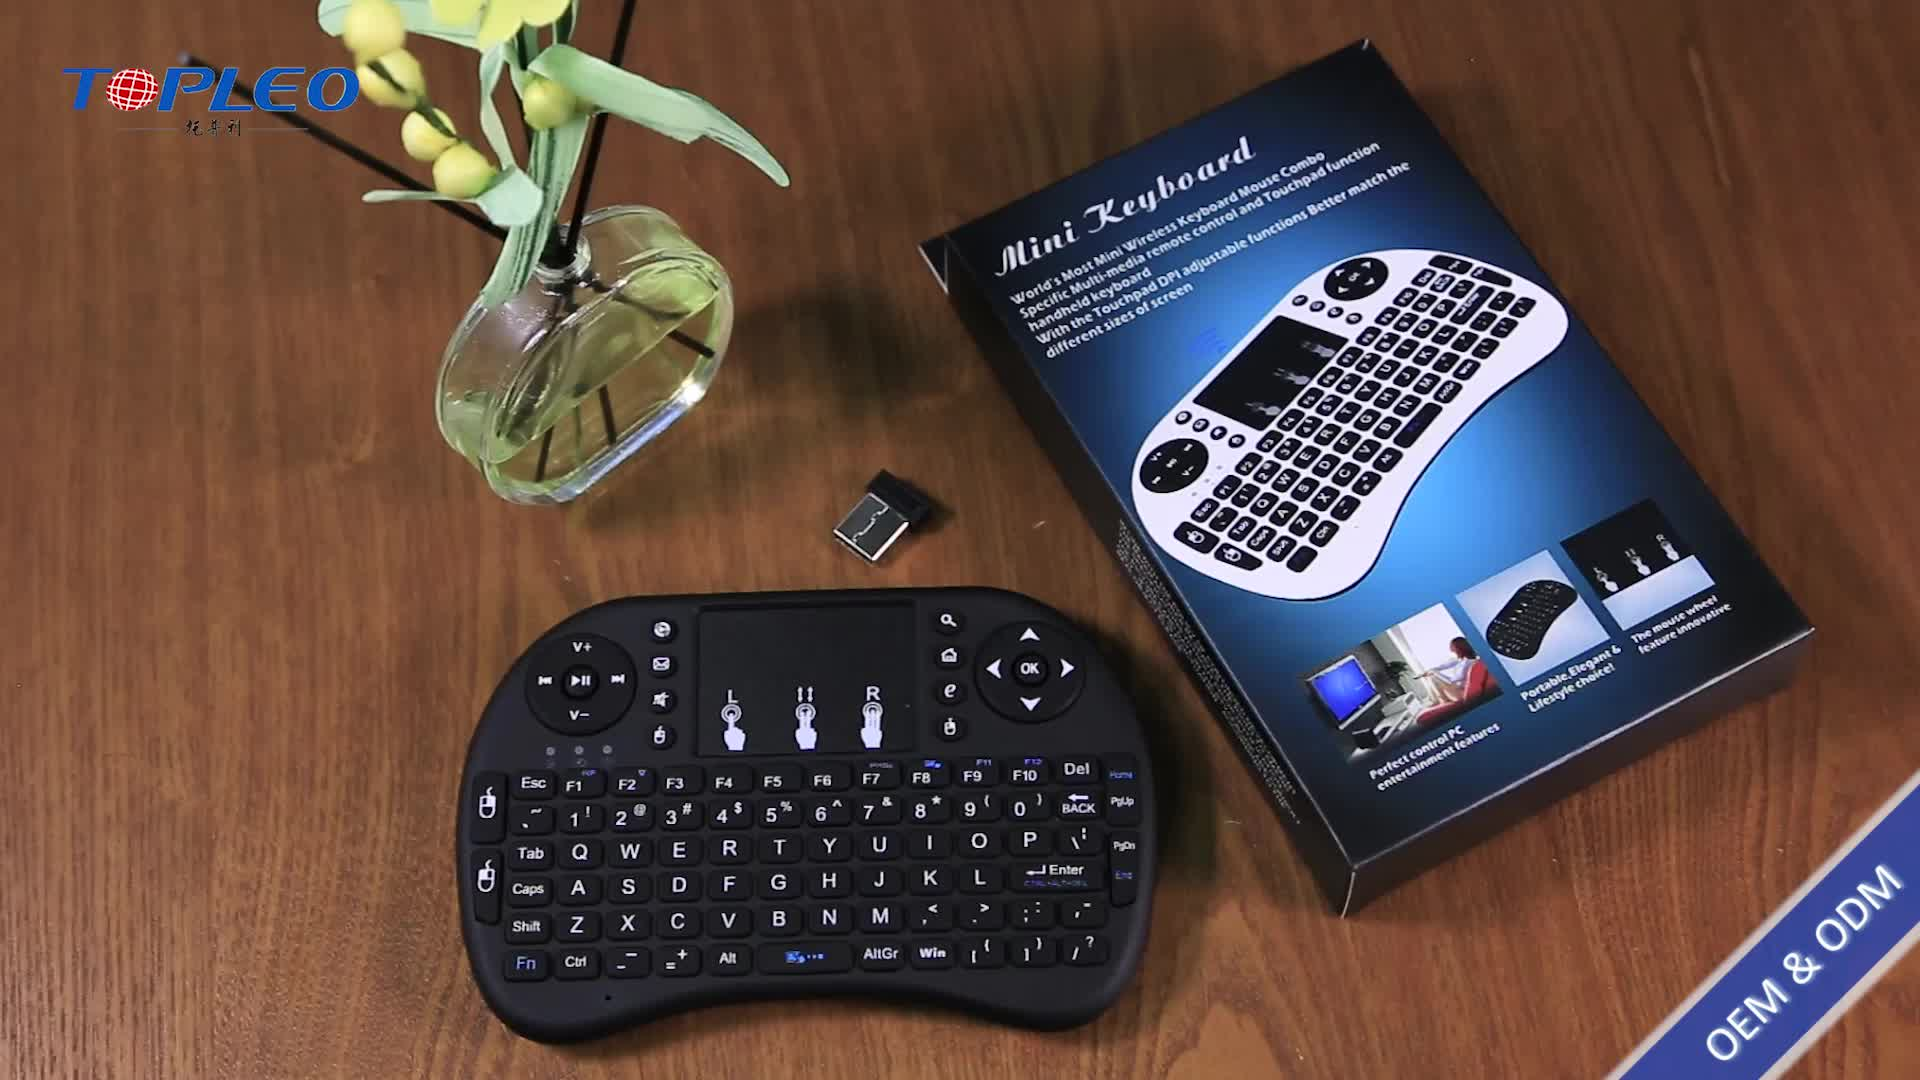 RII I8+ Backlit keyboard Mini Wireless Keyboard 2.4G with Touchpad Handheld Keyboard for PC Android TV Box